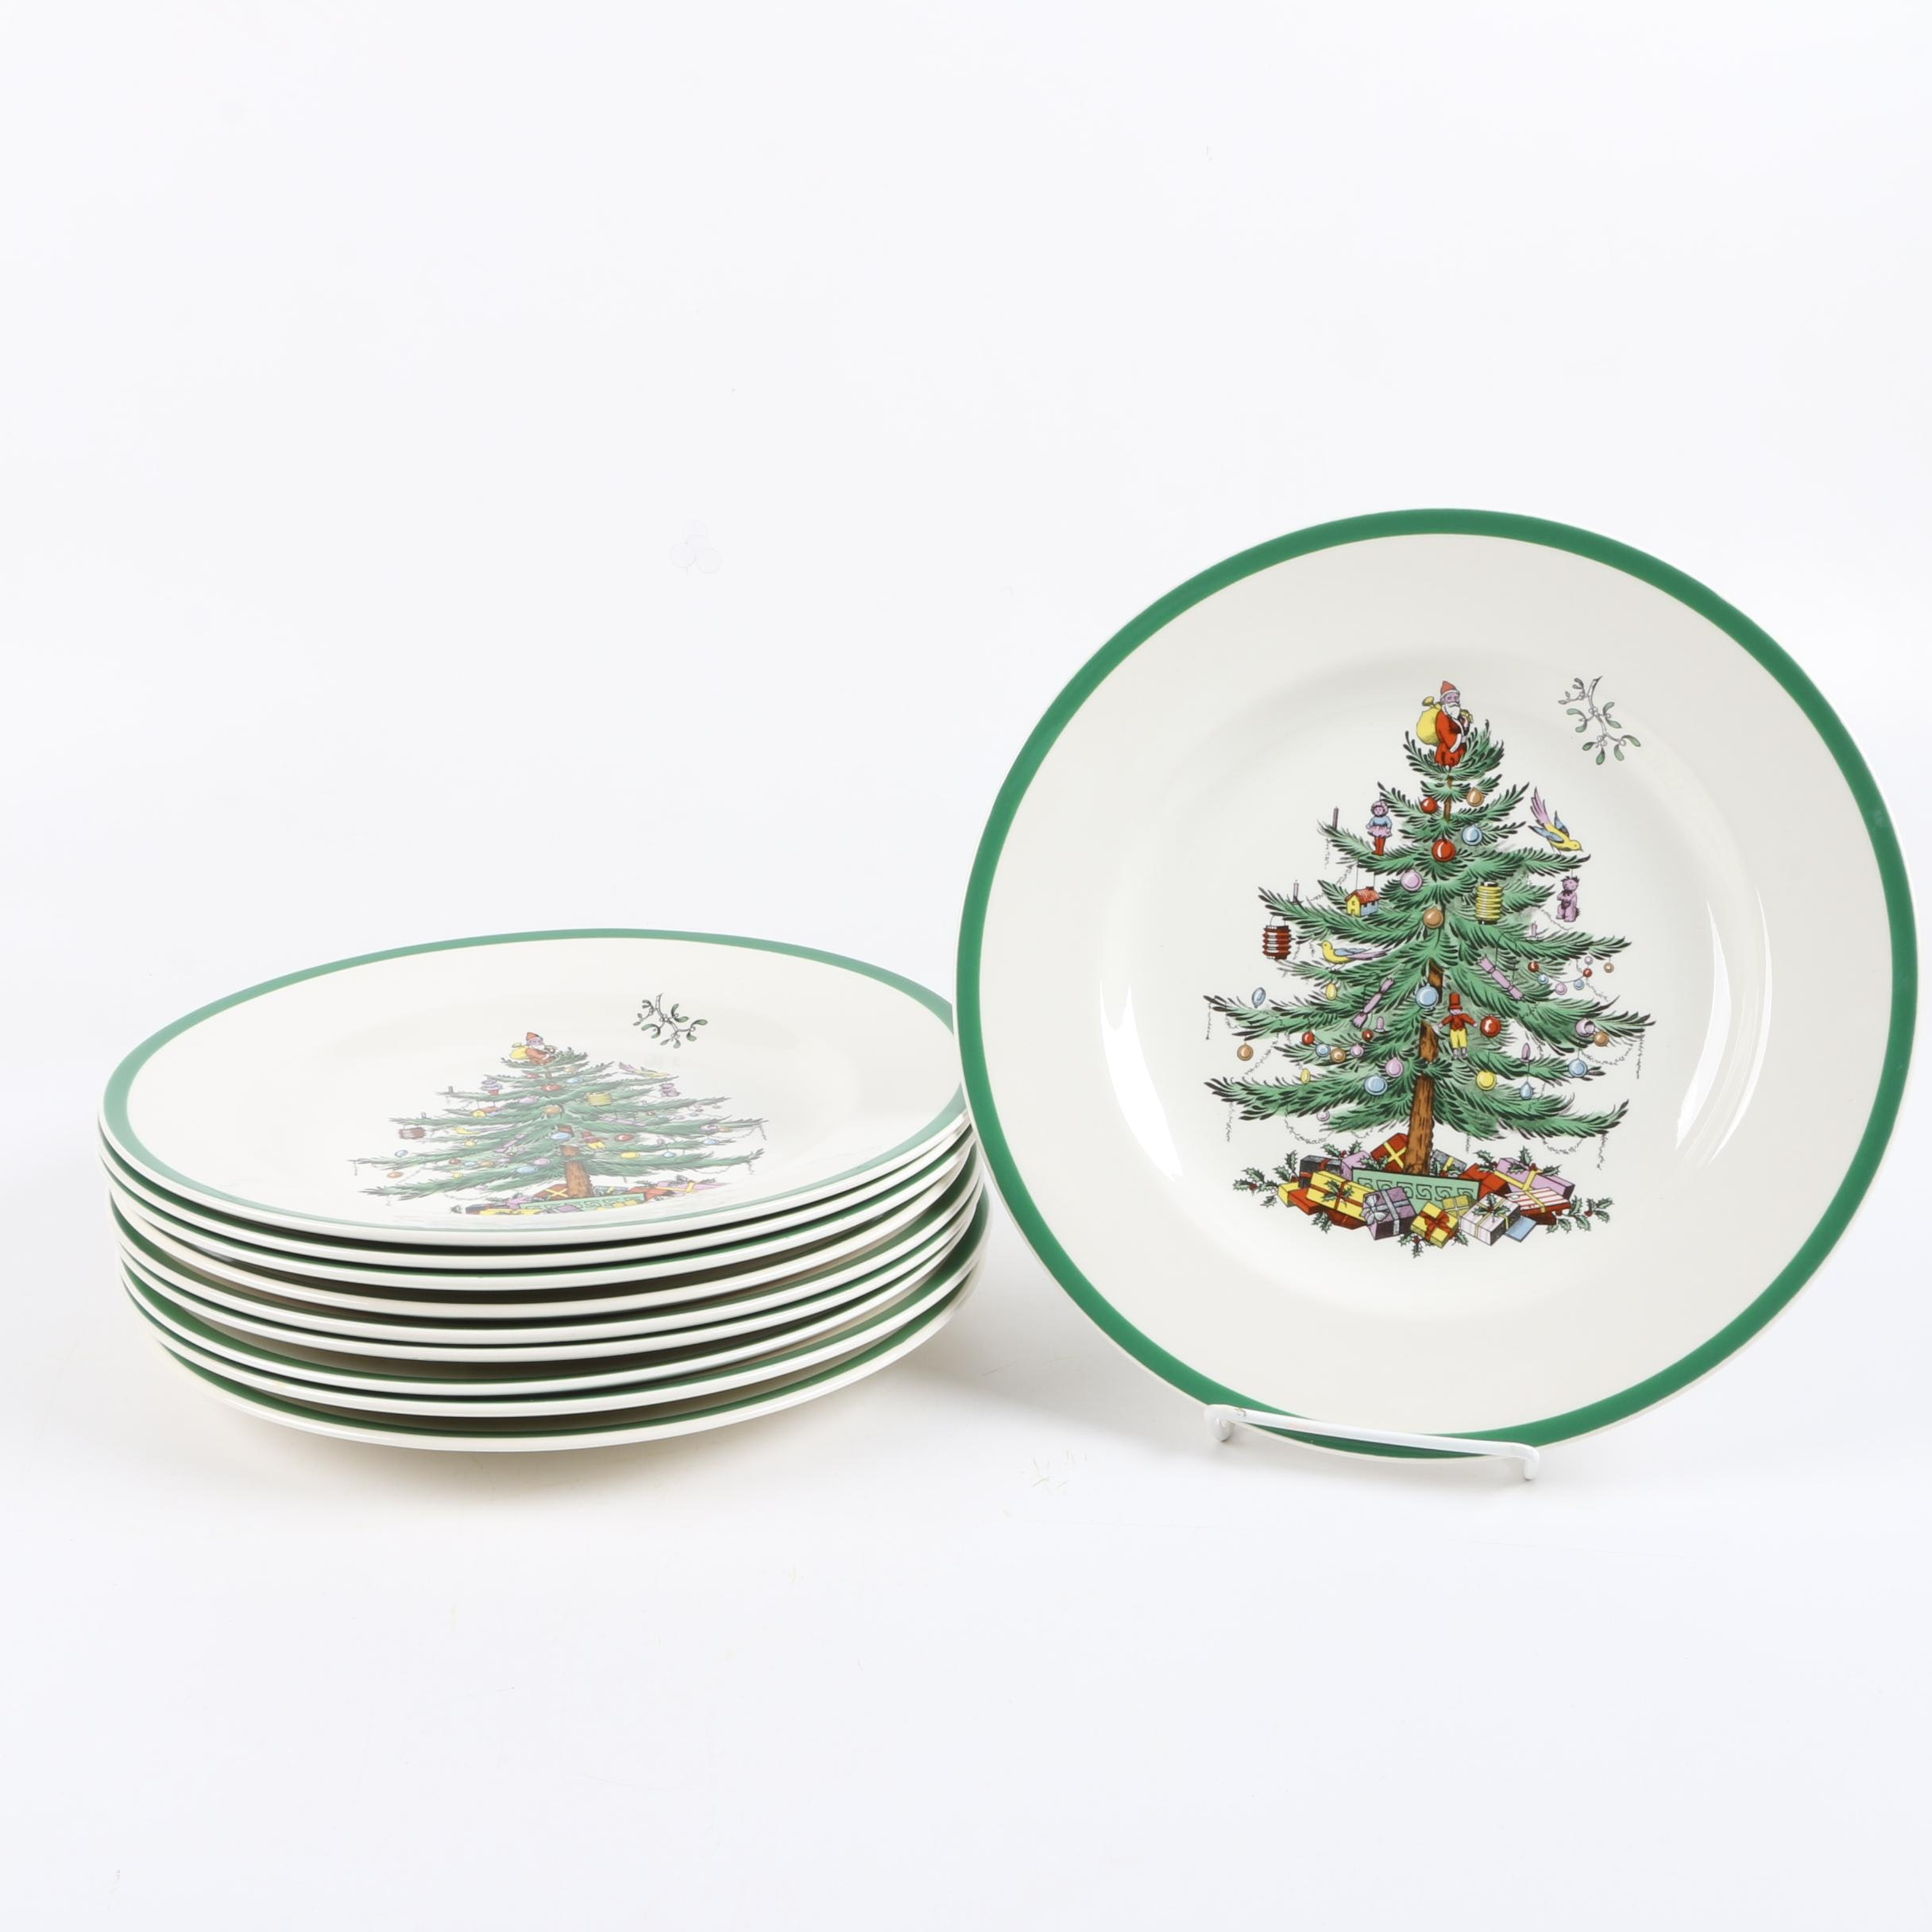 Spode  Christmas Tree  Dinner Plates ...  sc 1 st  EBTH.com : christmas tree dinner plates - pezcame.com